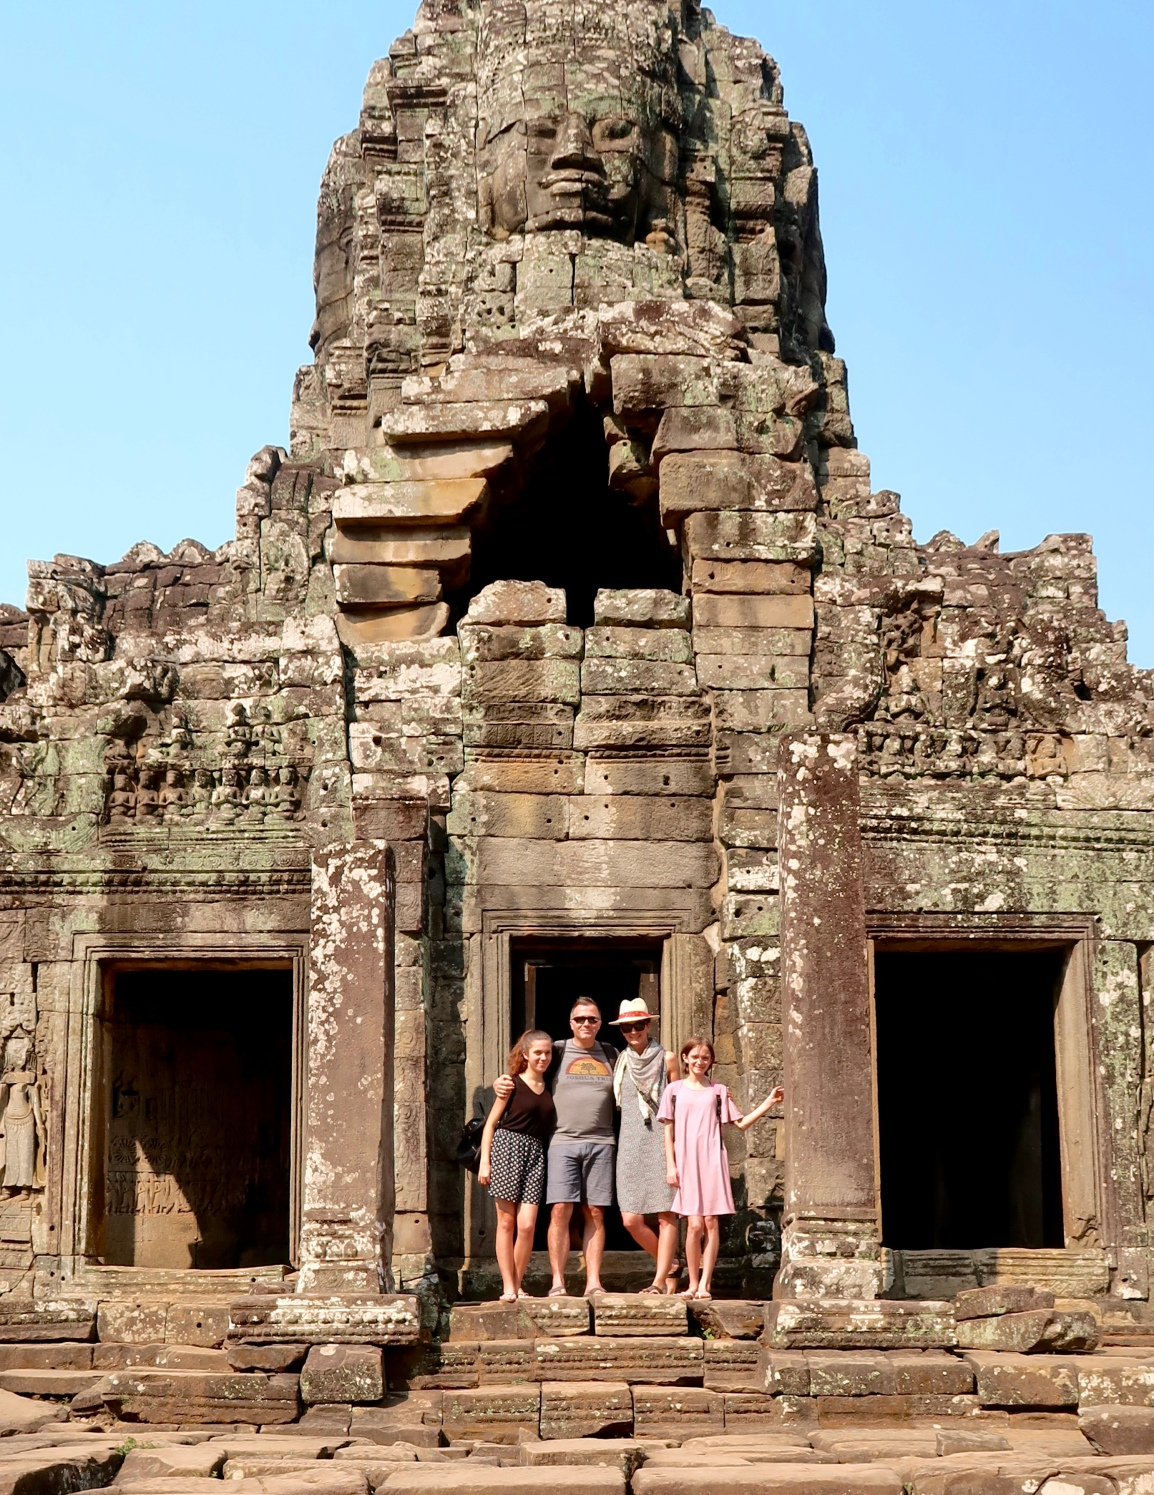 Highlights from Cambodia